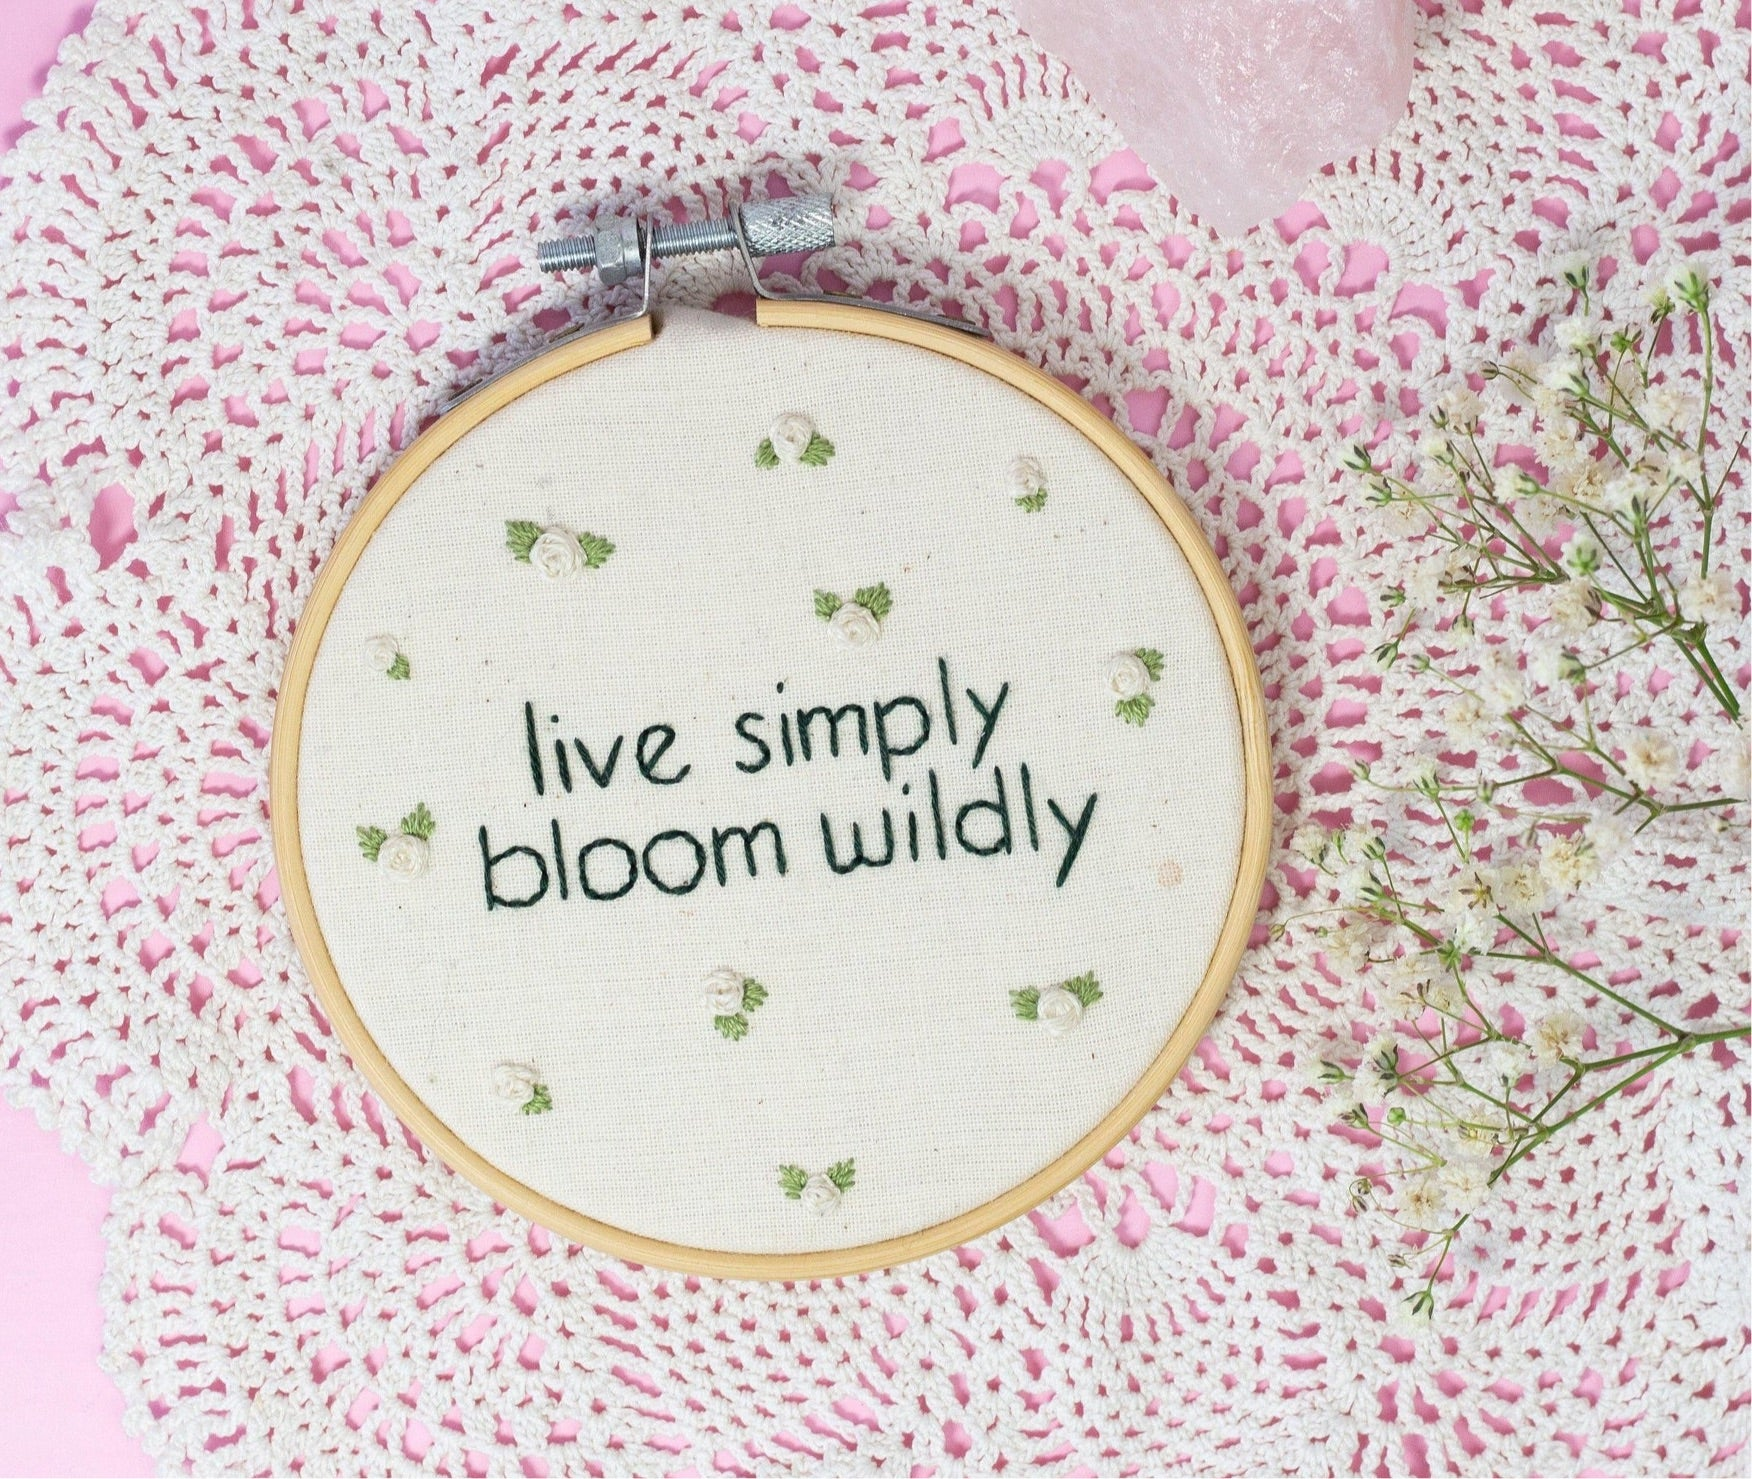 Bloom Wildly, Mini Embroidery | The Femme Bohemian - The Femme Bohemian